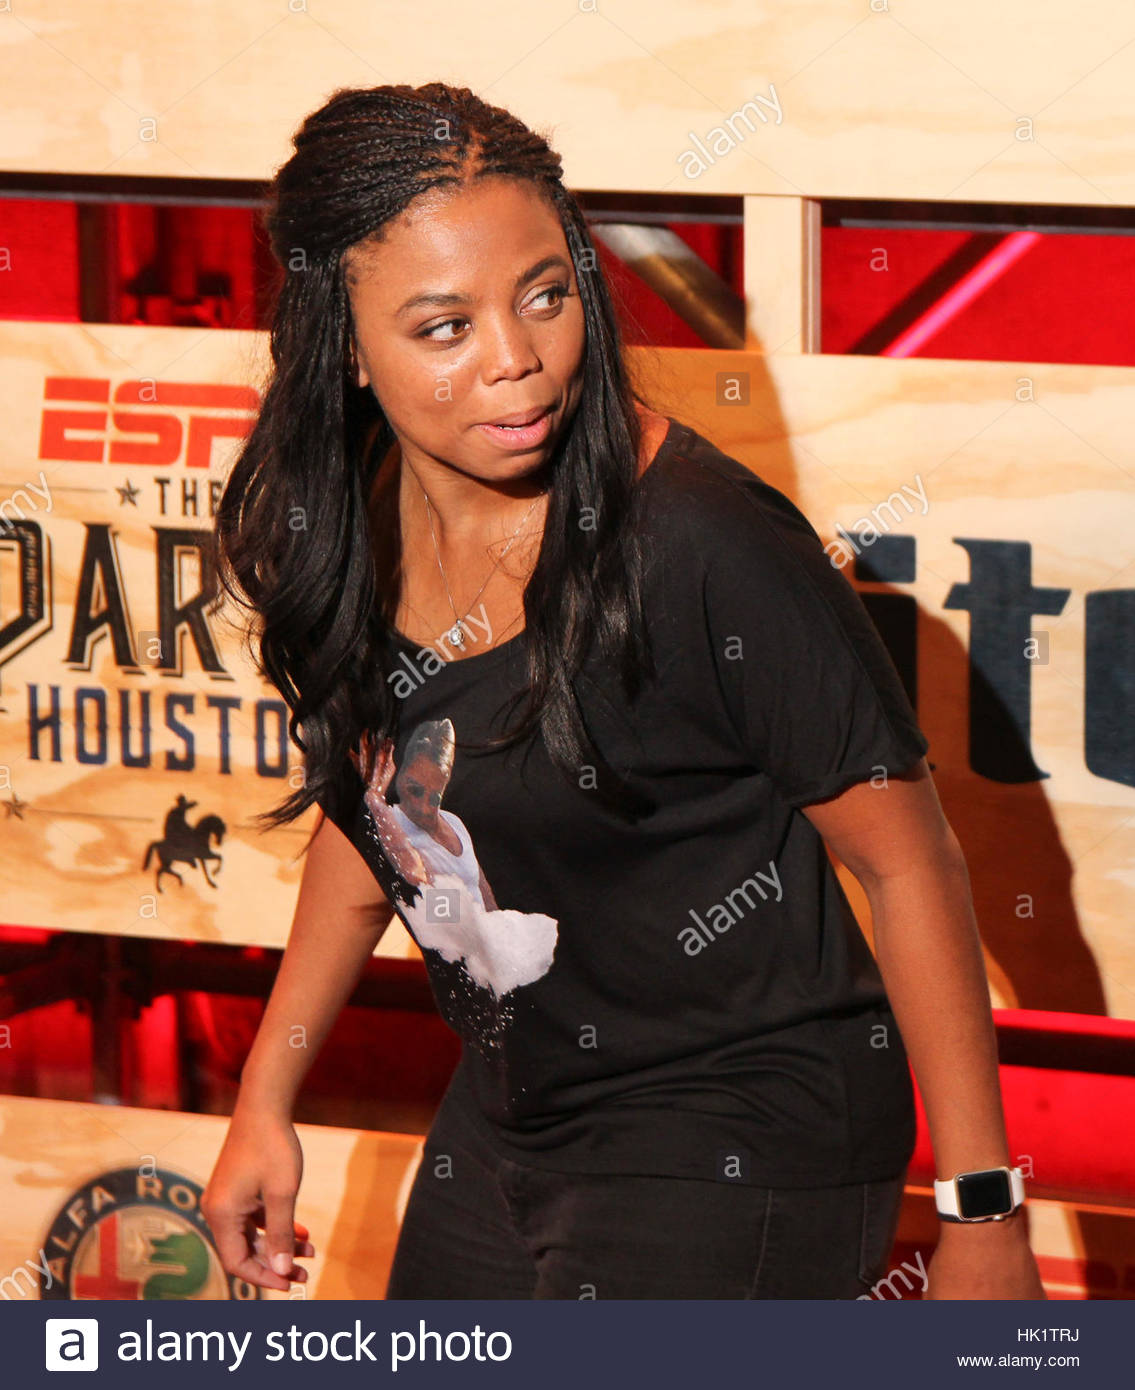 What Is The Best Response To ESPN's Suspension Of Jemele Hill? | Hayes Survey